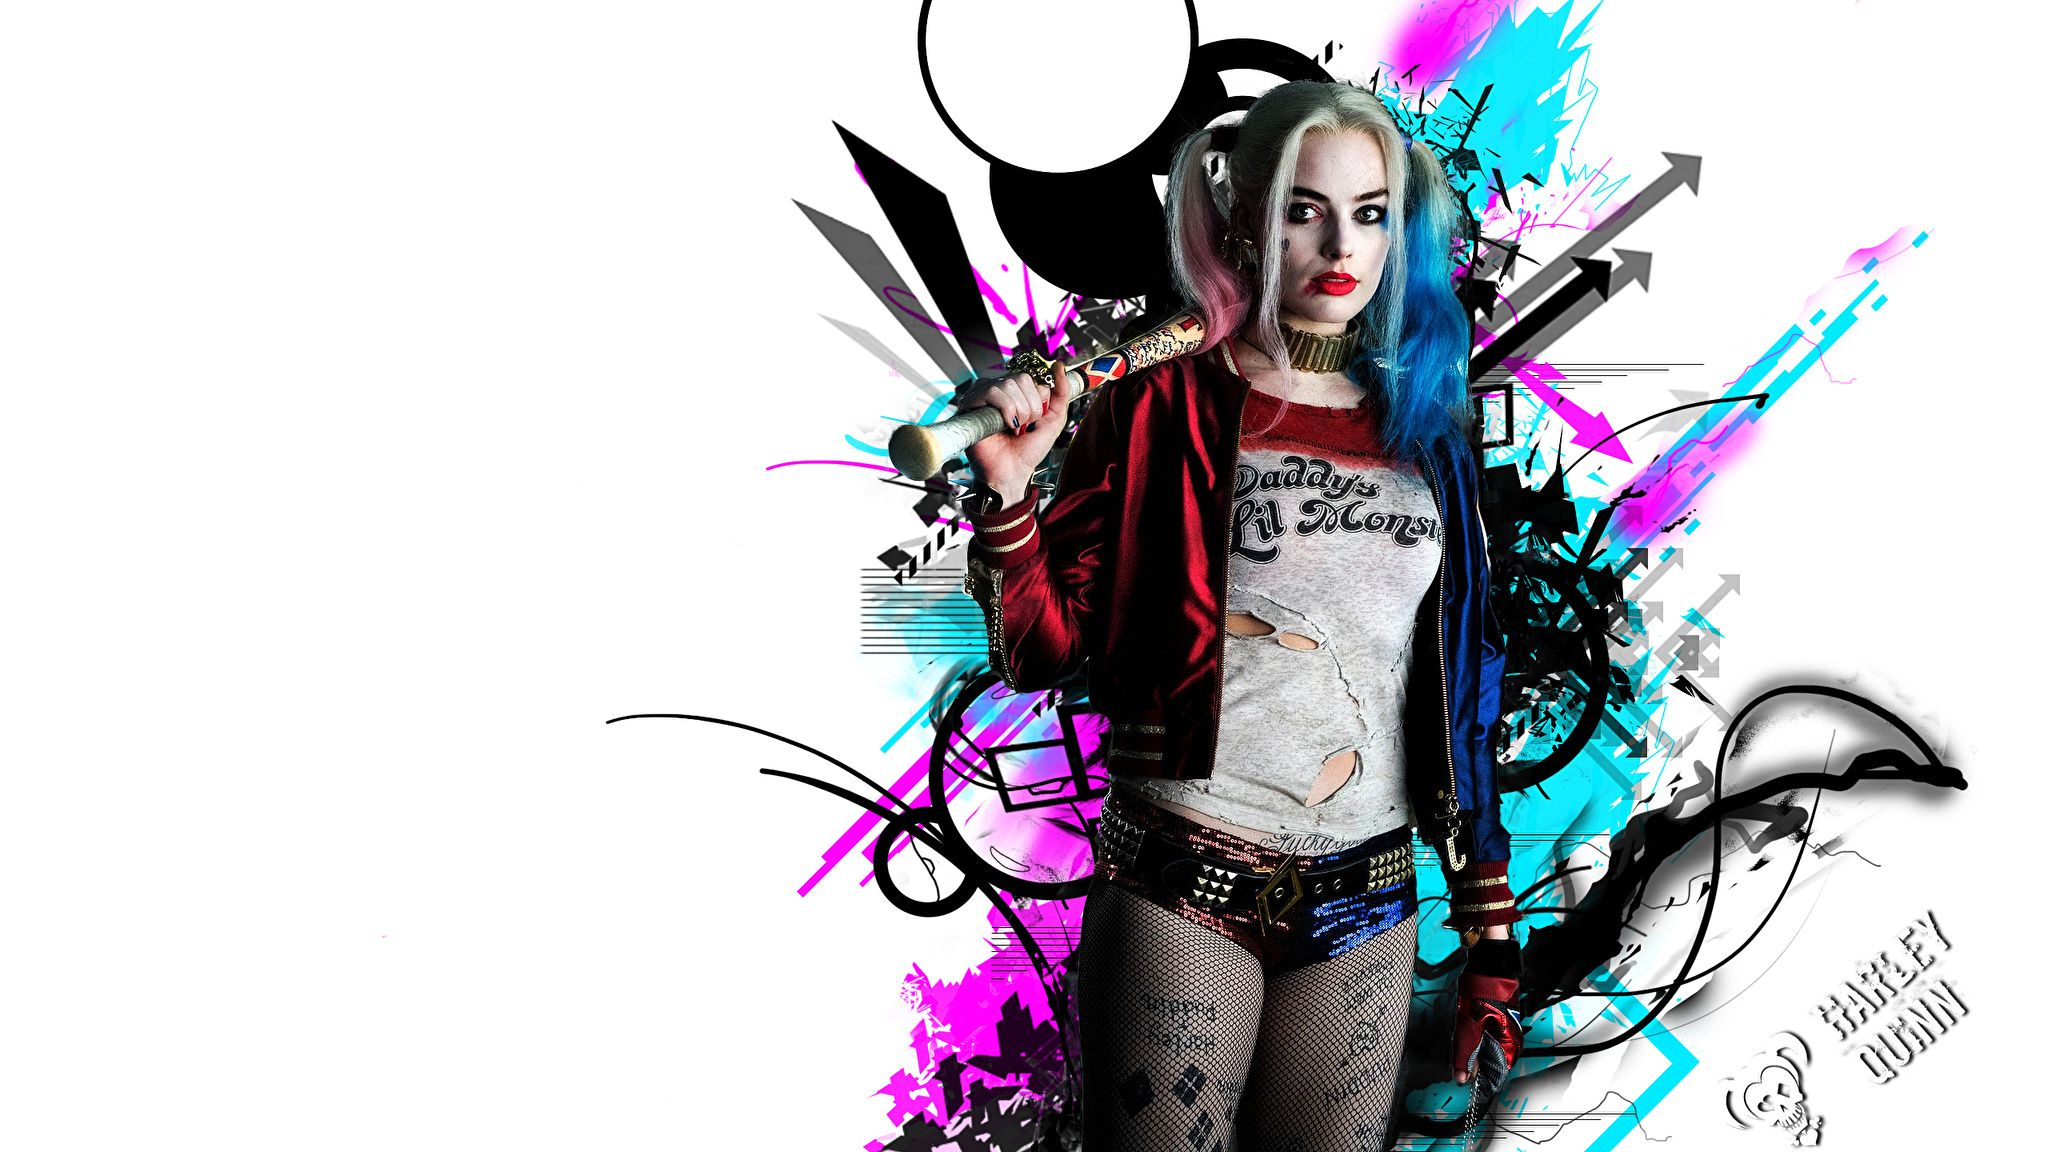 2048x1152 Images Suicide Squad 2016 Margot Robbie Blonde girl Harley 2048x1152